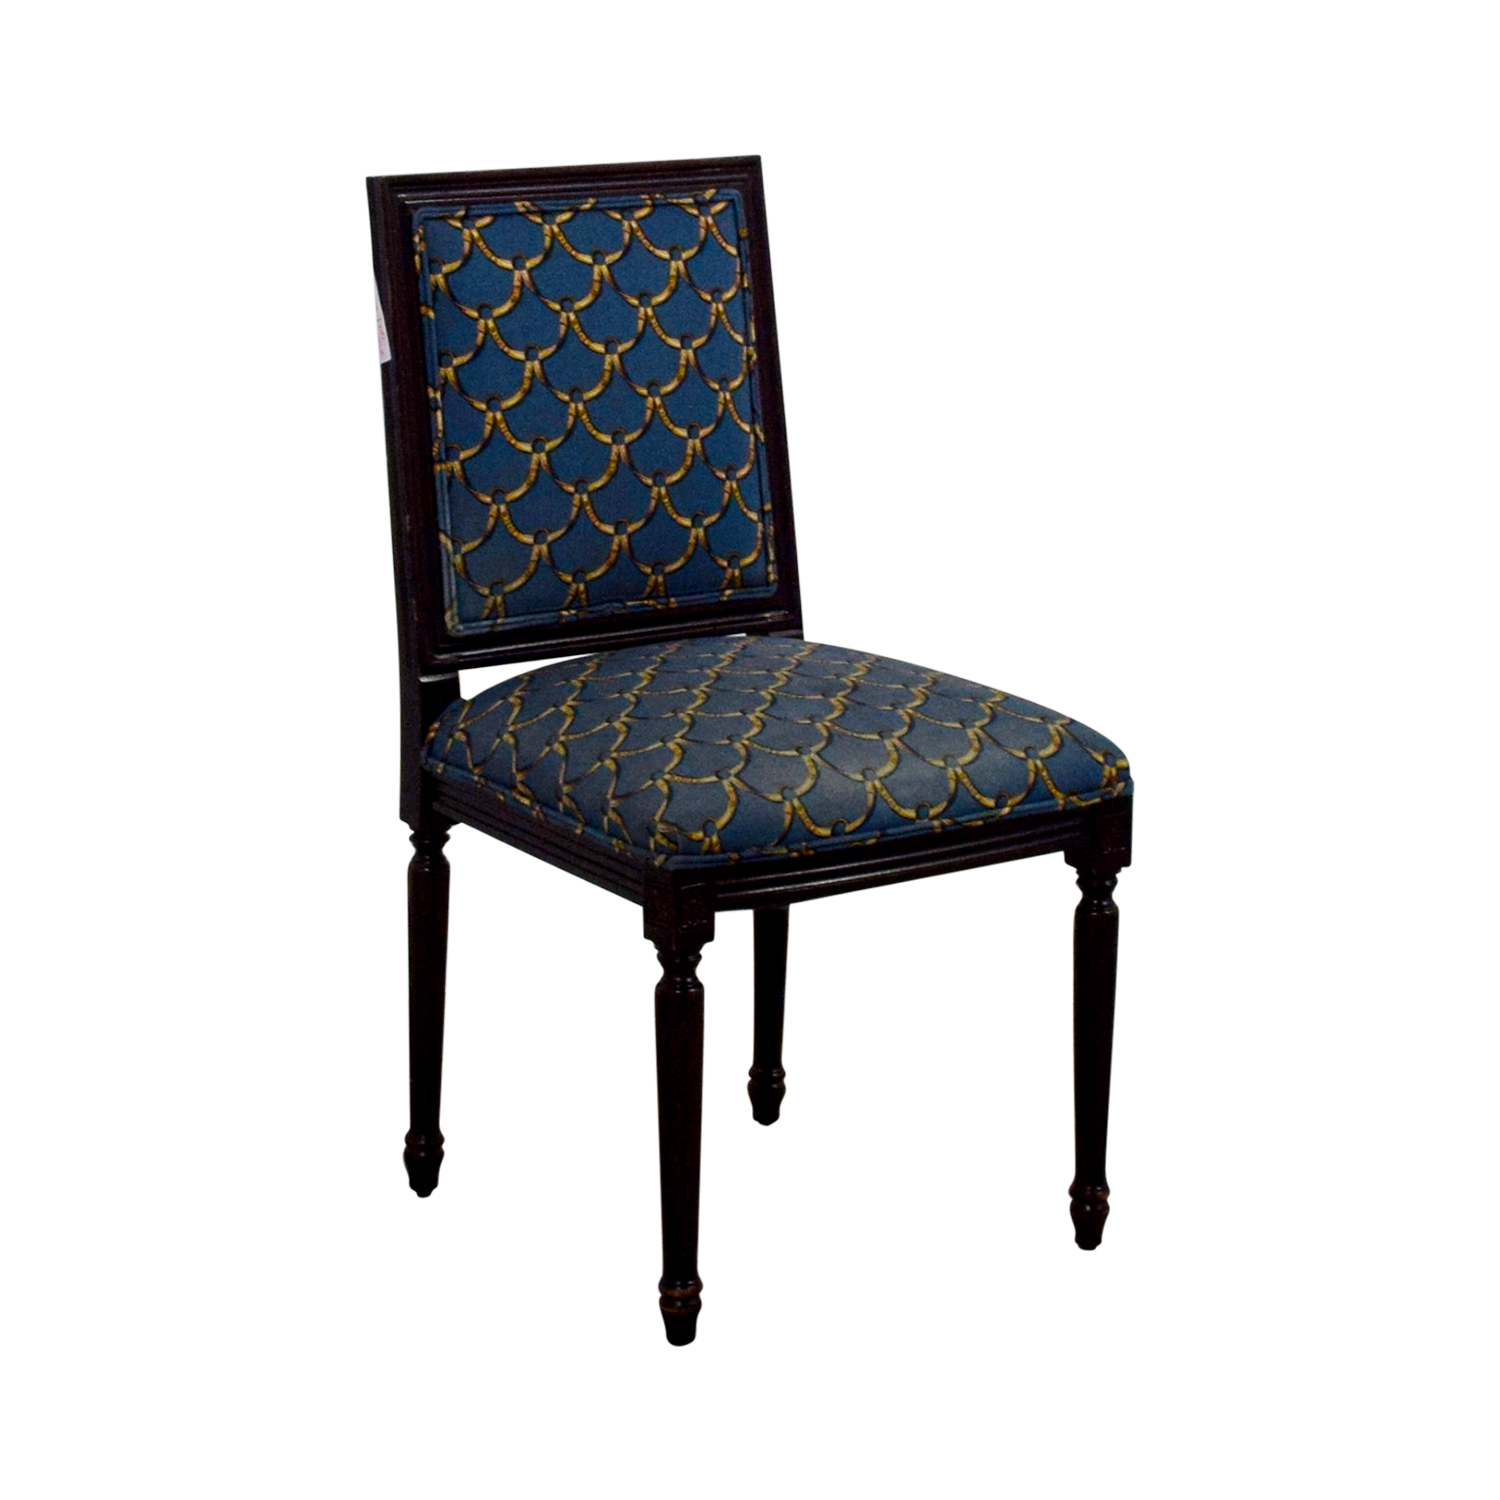 ballard design chairs step 2 desk and chair 88 off designs blue gold